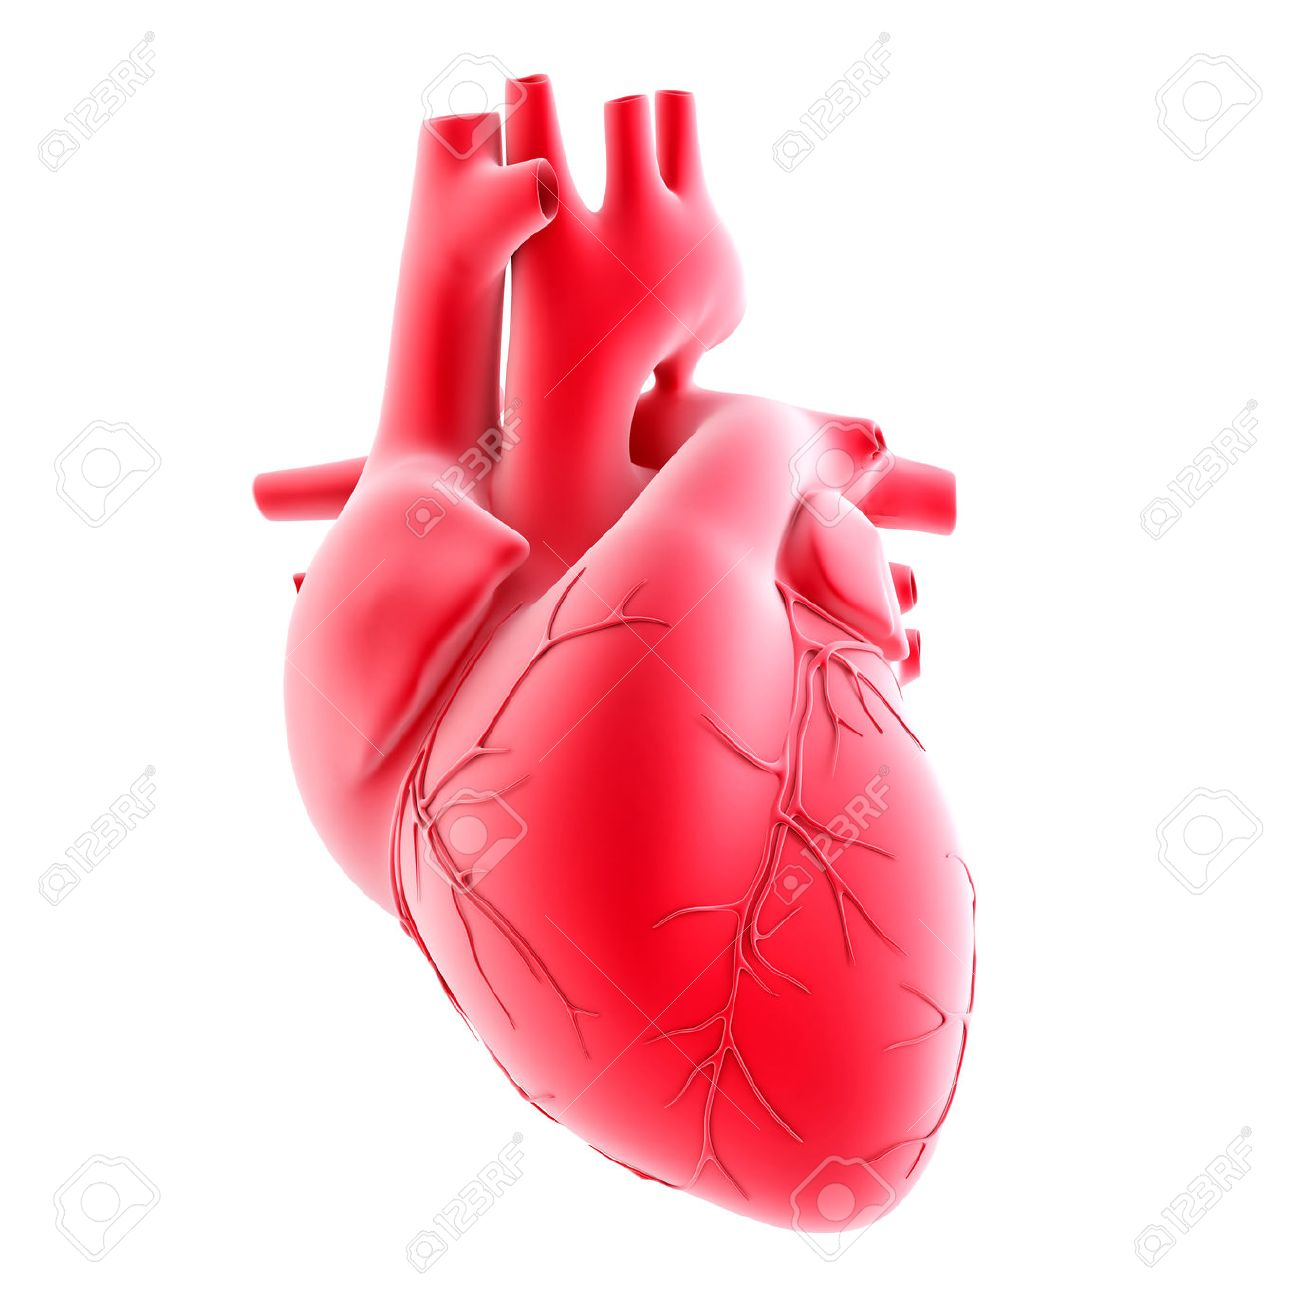 Human heart. 3d illustration. Isolated, contains clipping path Standard-Bild - 33234189